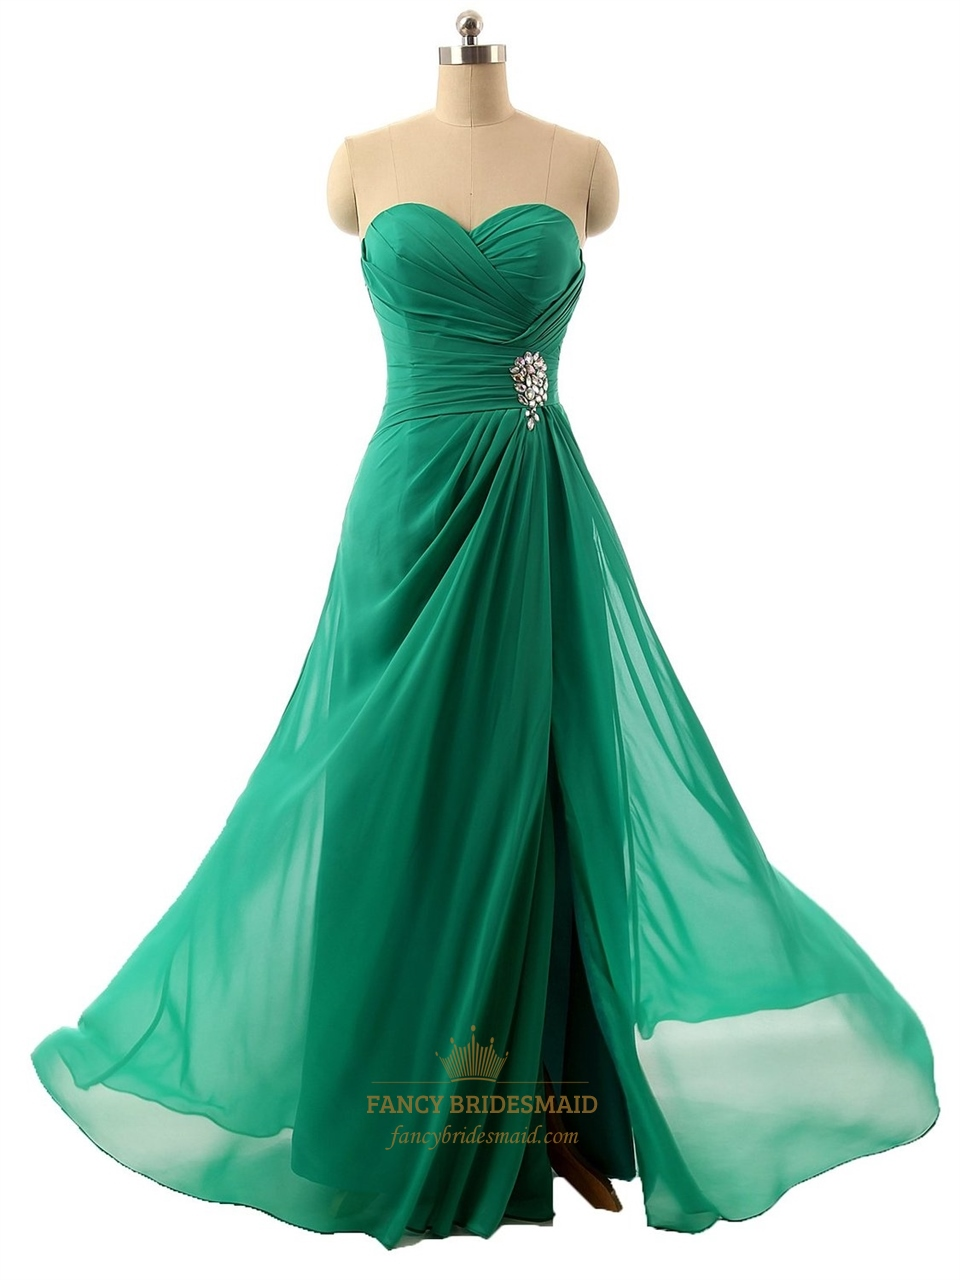 Permalink to Emerald Color Dress